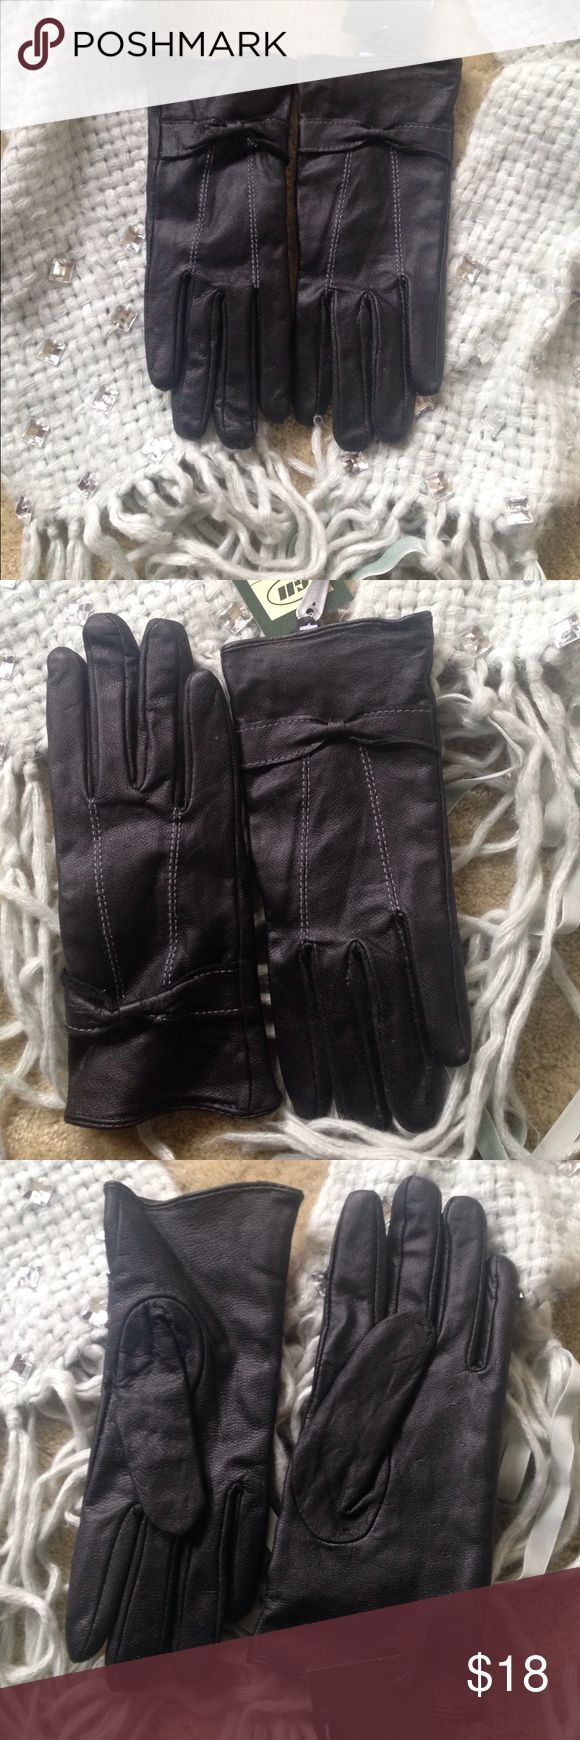 Extra small ladies leather gloves uk -  Black Leather Gloves Nwt